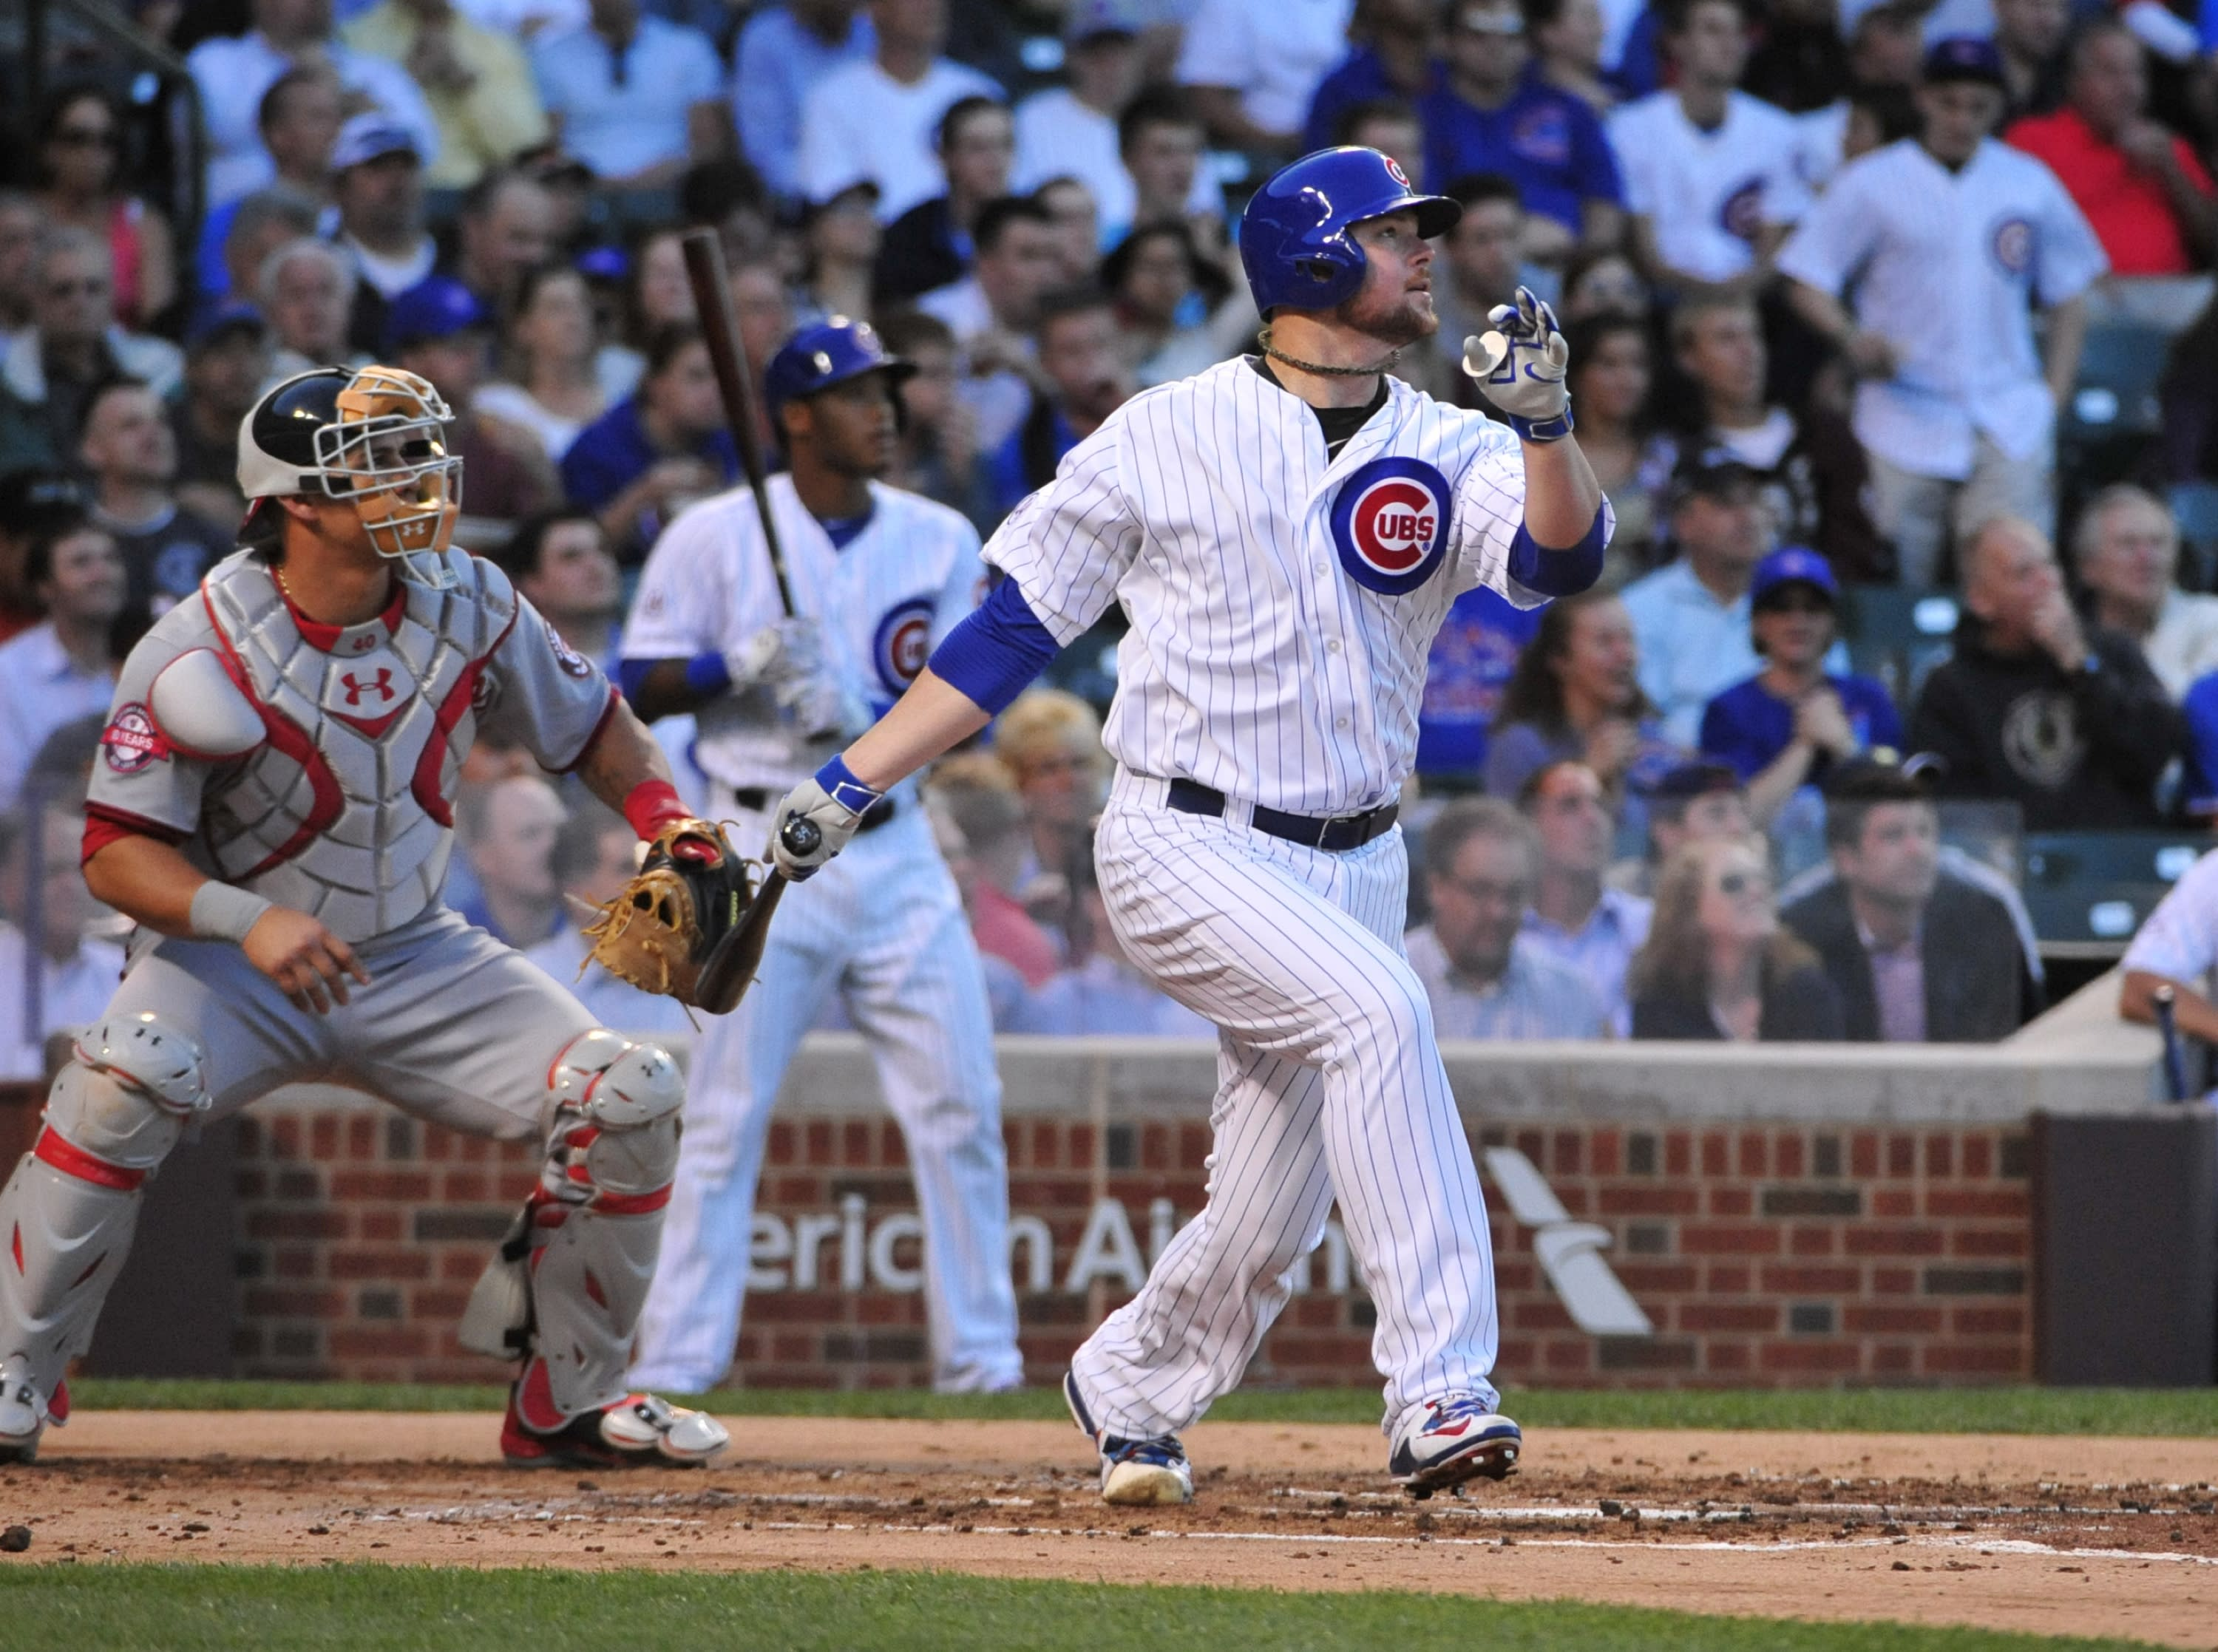 Jon Lester sets record for futility at the plate by starting career 0-for-58